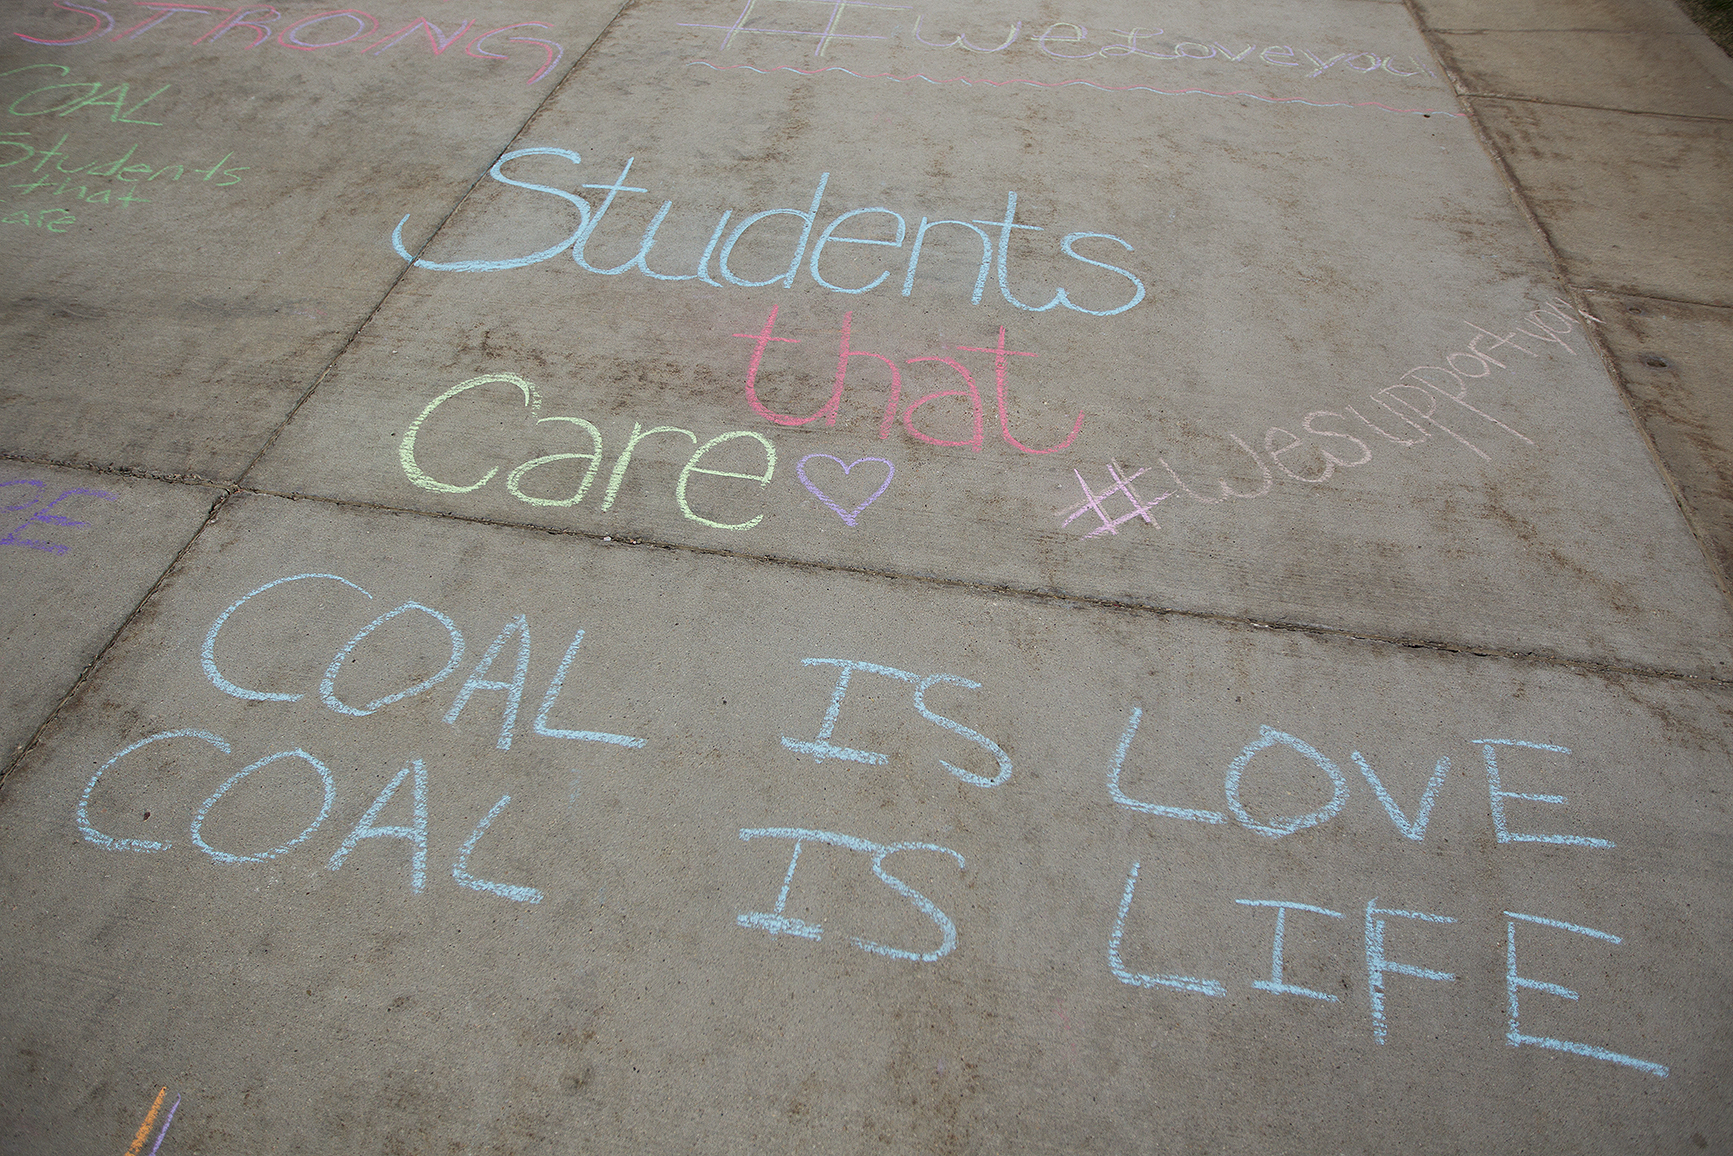 Supportive messages are written in chalk outside the Heritage Center before the Friends of Coal town hall meeting on Thursday April 14, 2016. Members of Friends of Coal, as well as miners and other coal industry representatives came to Gillette to speak about how to strengthen the perceptions around coal.